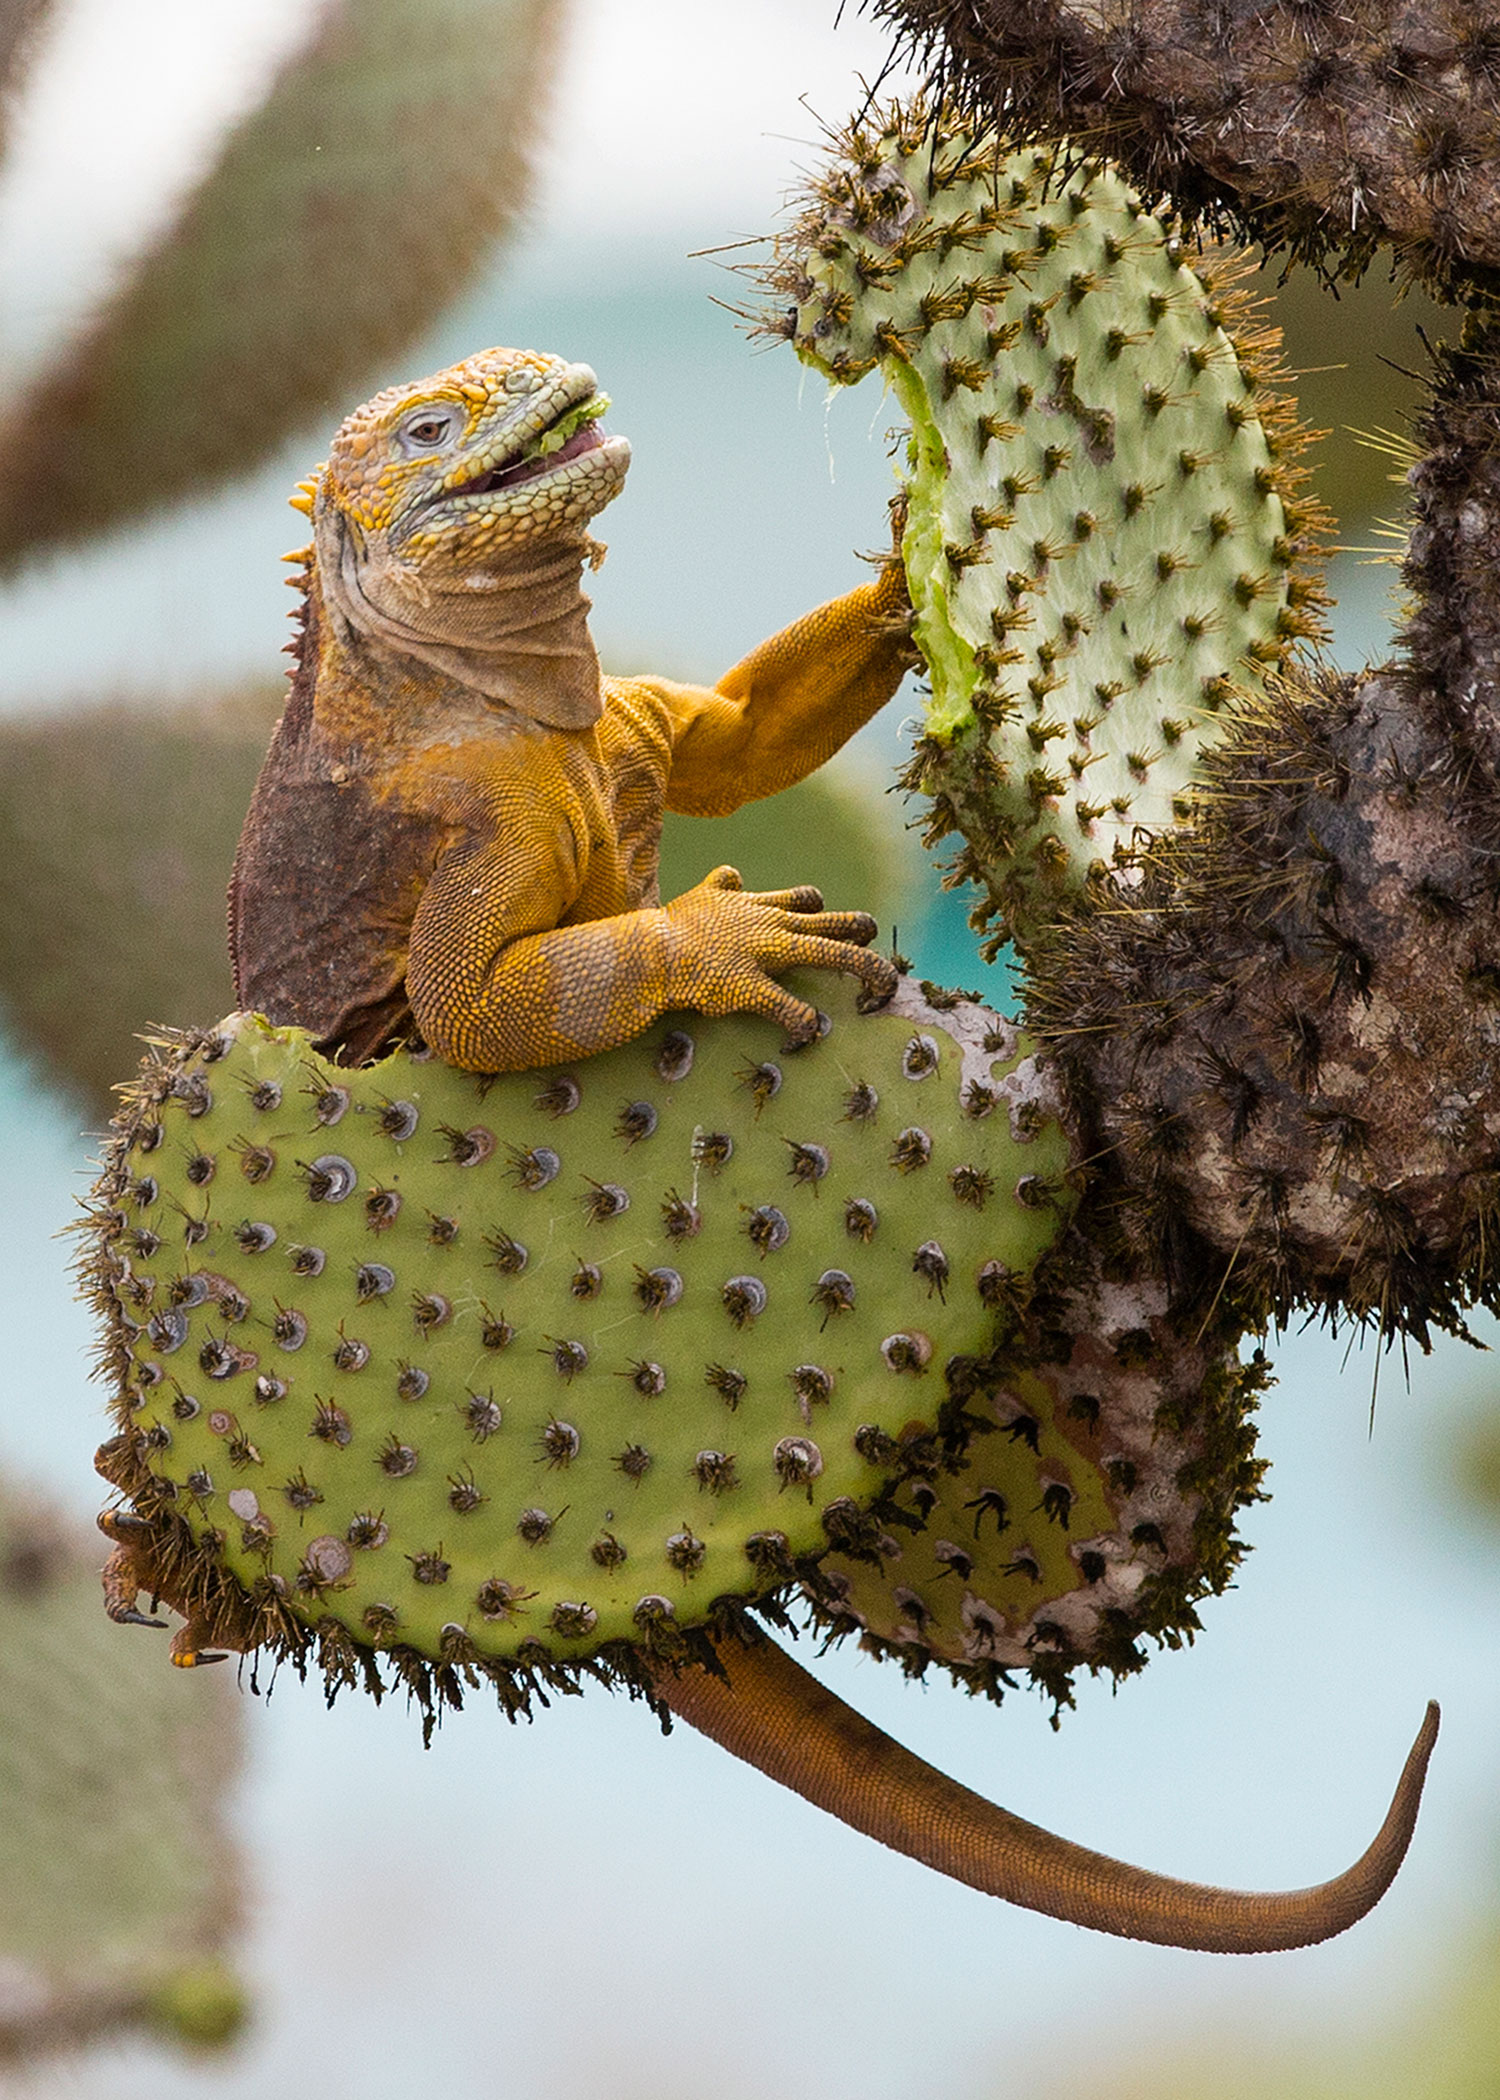 Reptiles Amphibians Crustaceans Insects Spiders